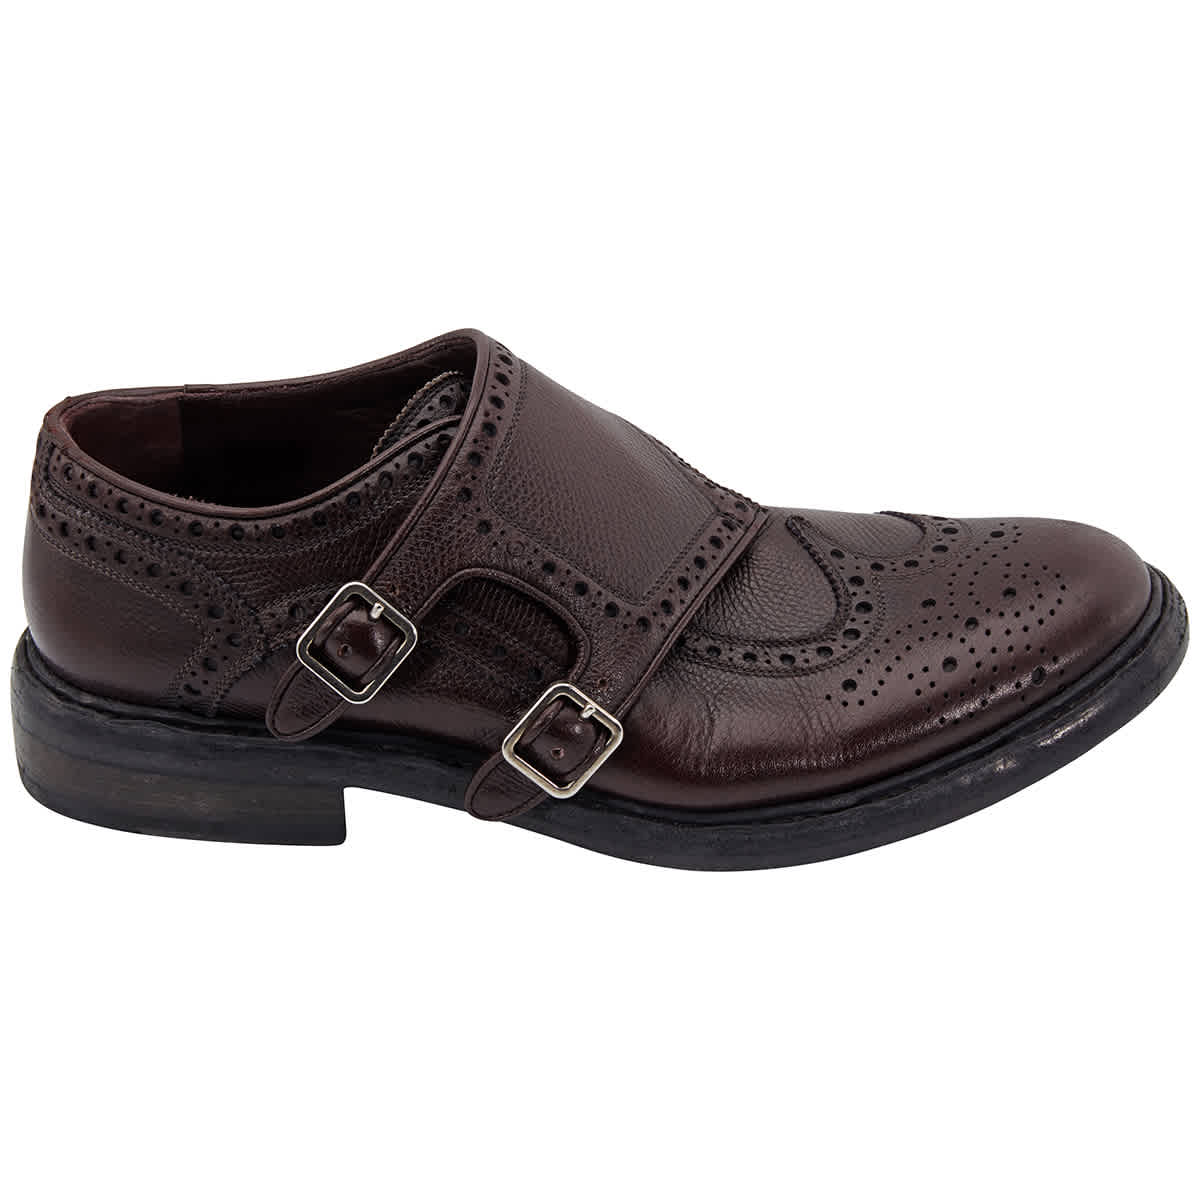 Burberry Burgundy Red Textured Leather Monk Shoes